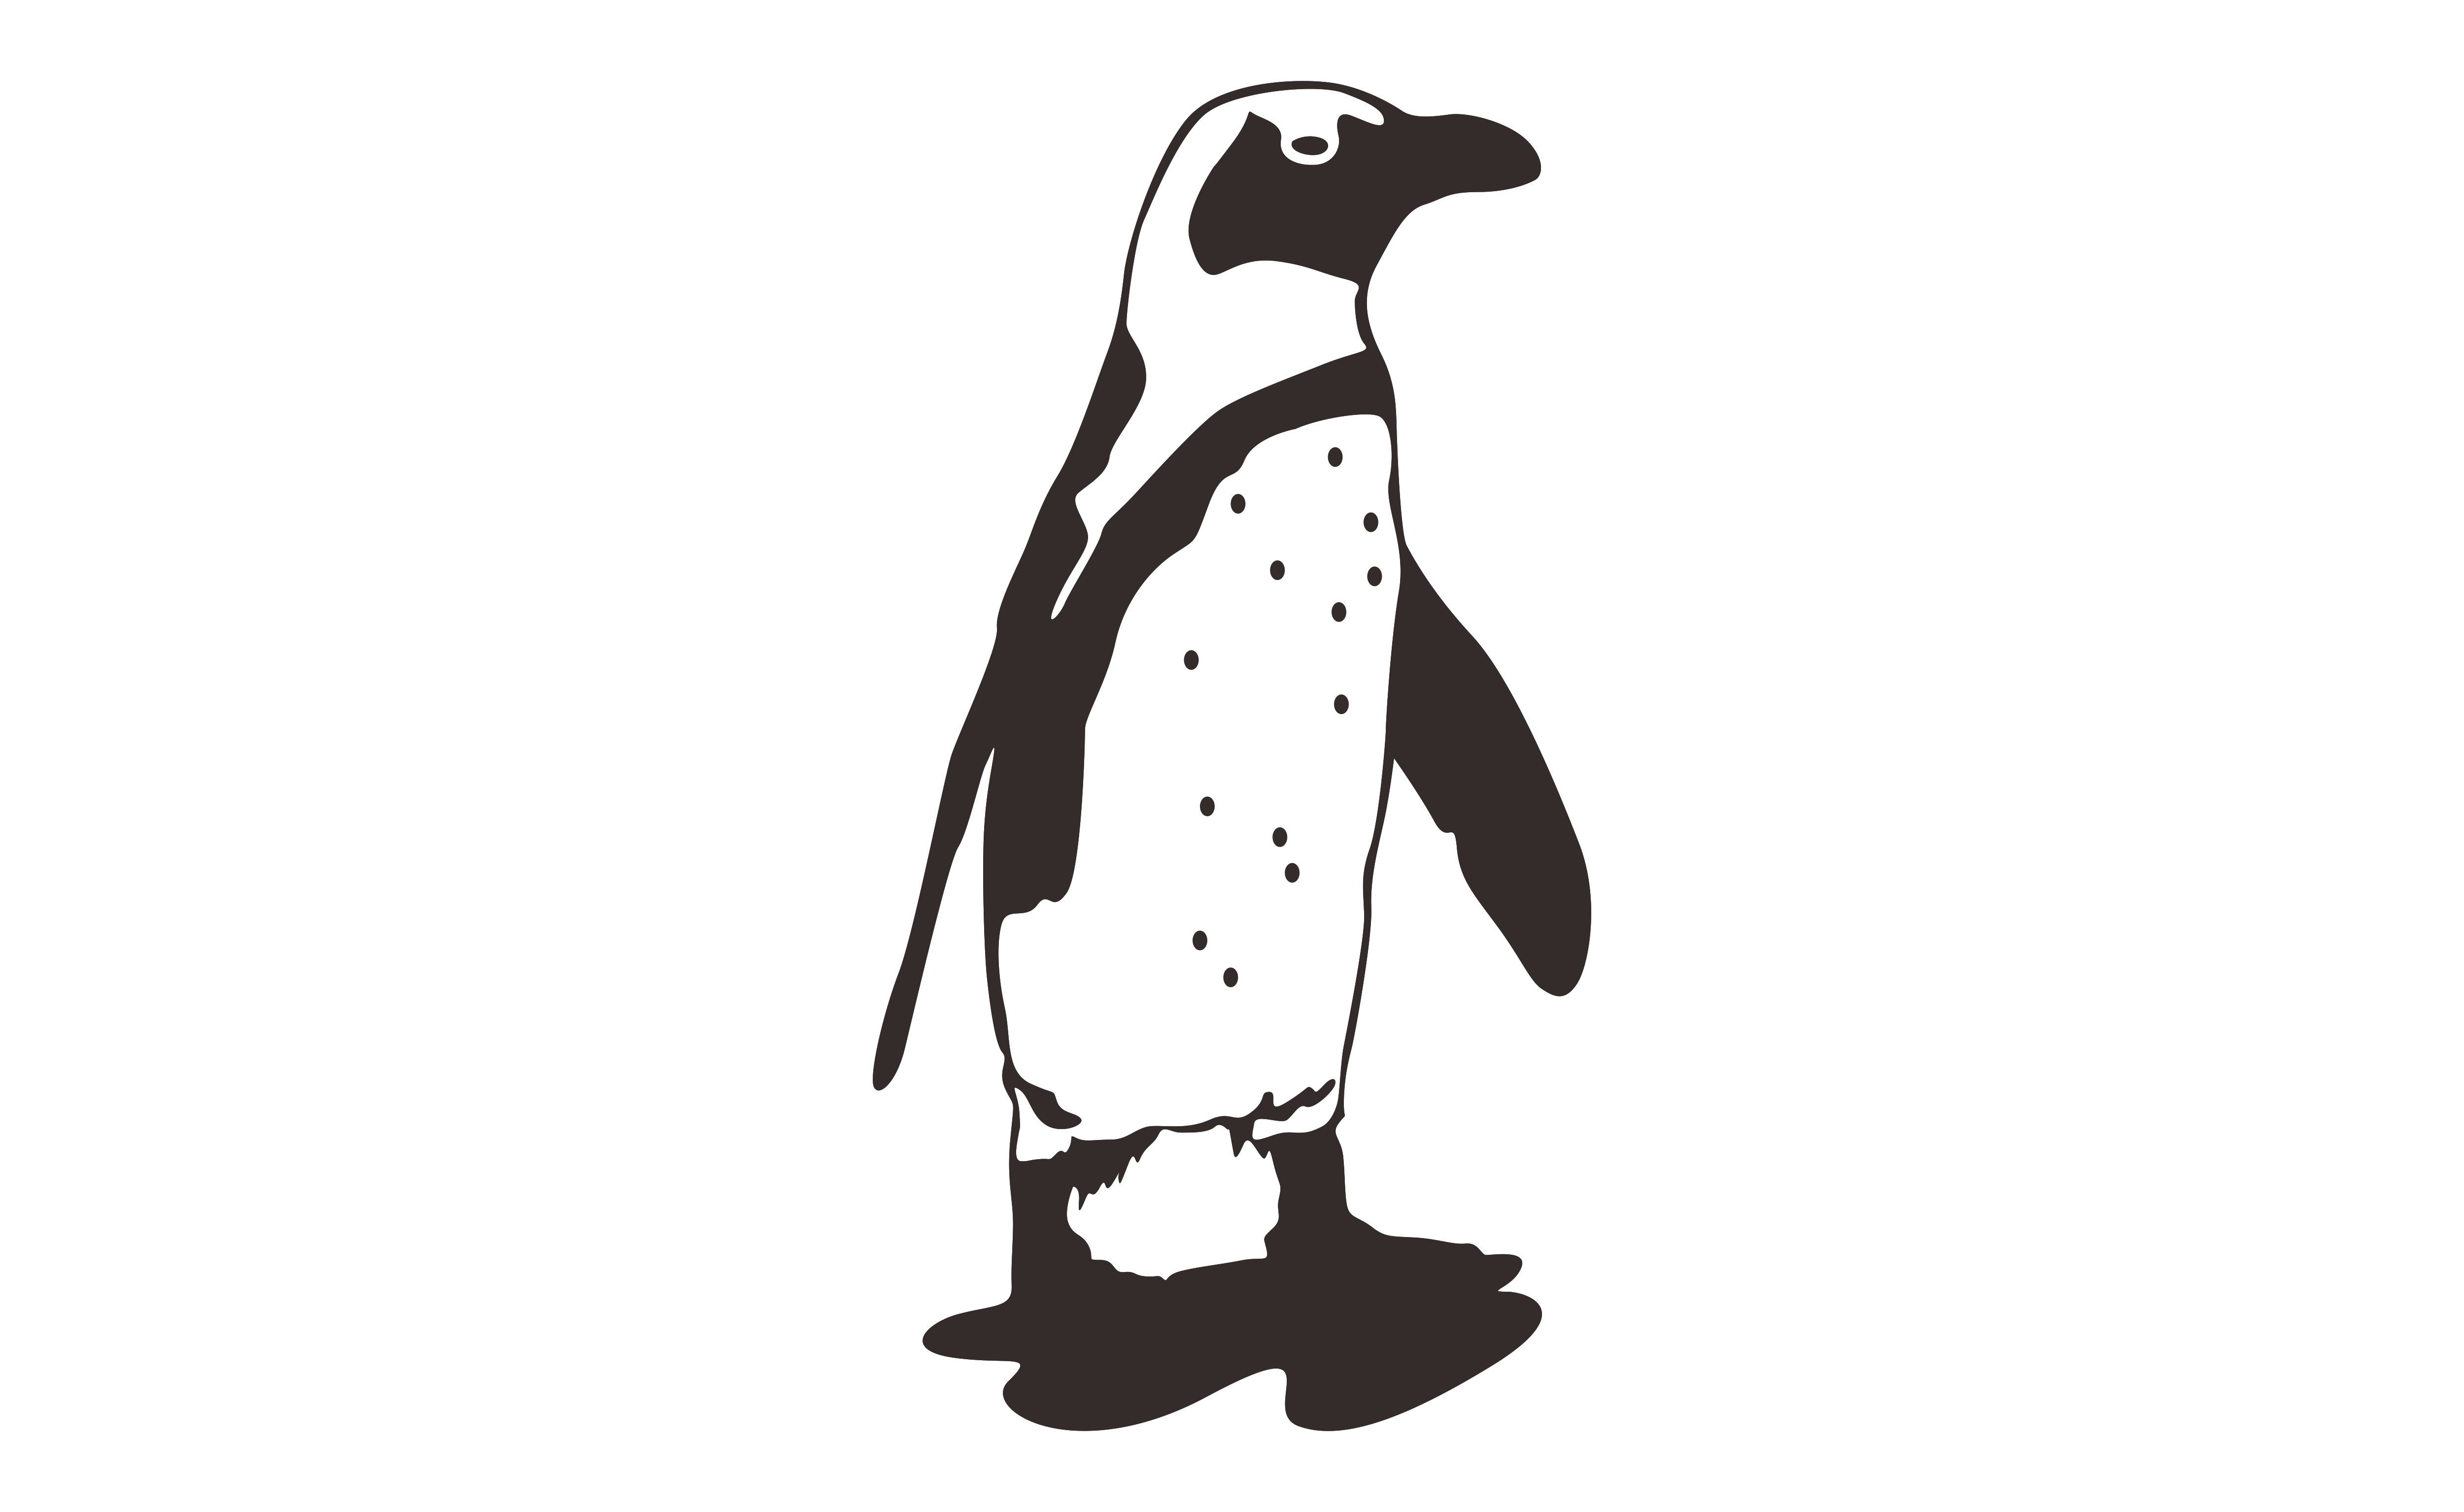 Download Free Penguin With Line Art Style Graphic By Arief Sapta Adjie for Cricut Explore, Silhouette and other cutting machines.